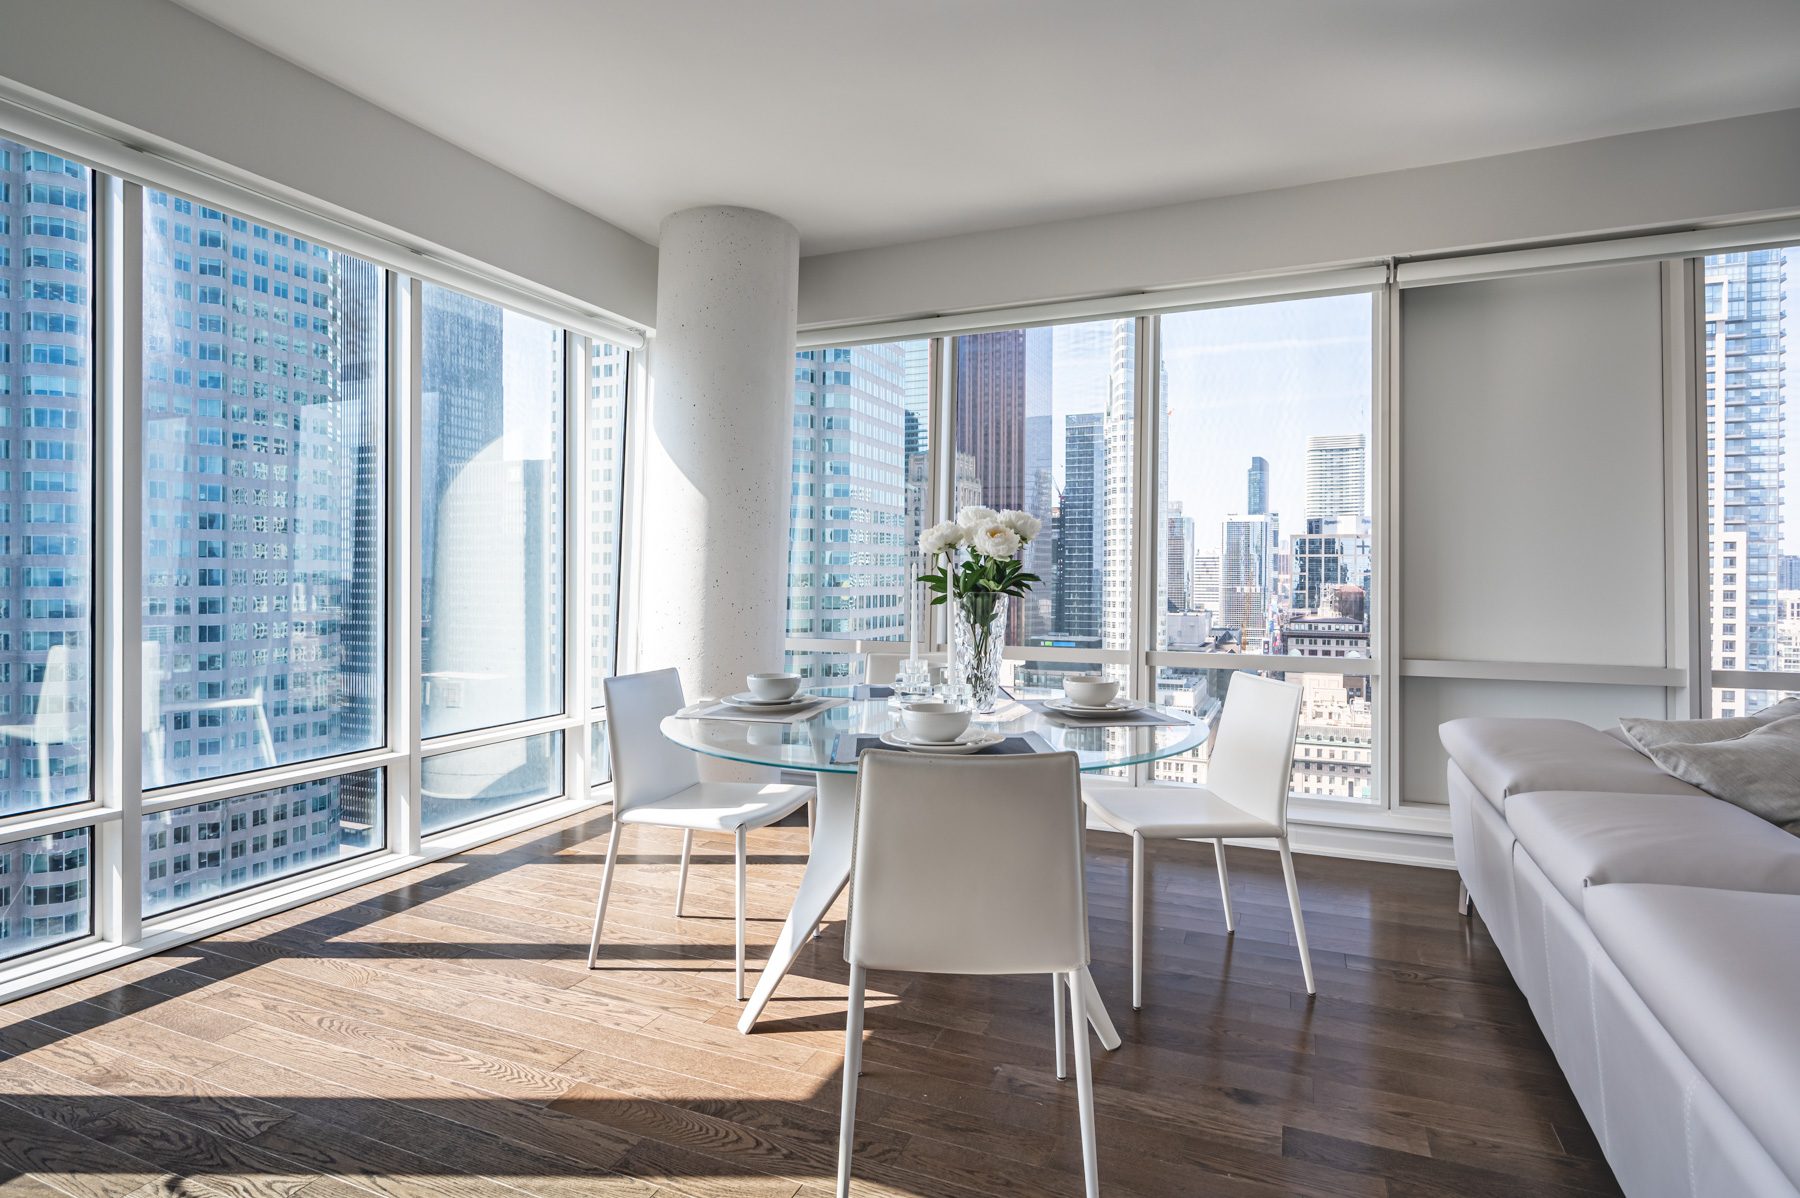 Condo dining room with view of Toronto through large windows.